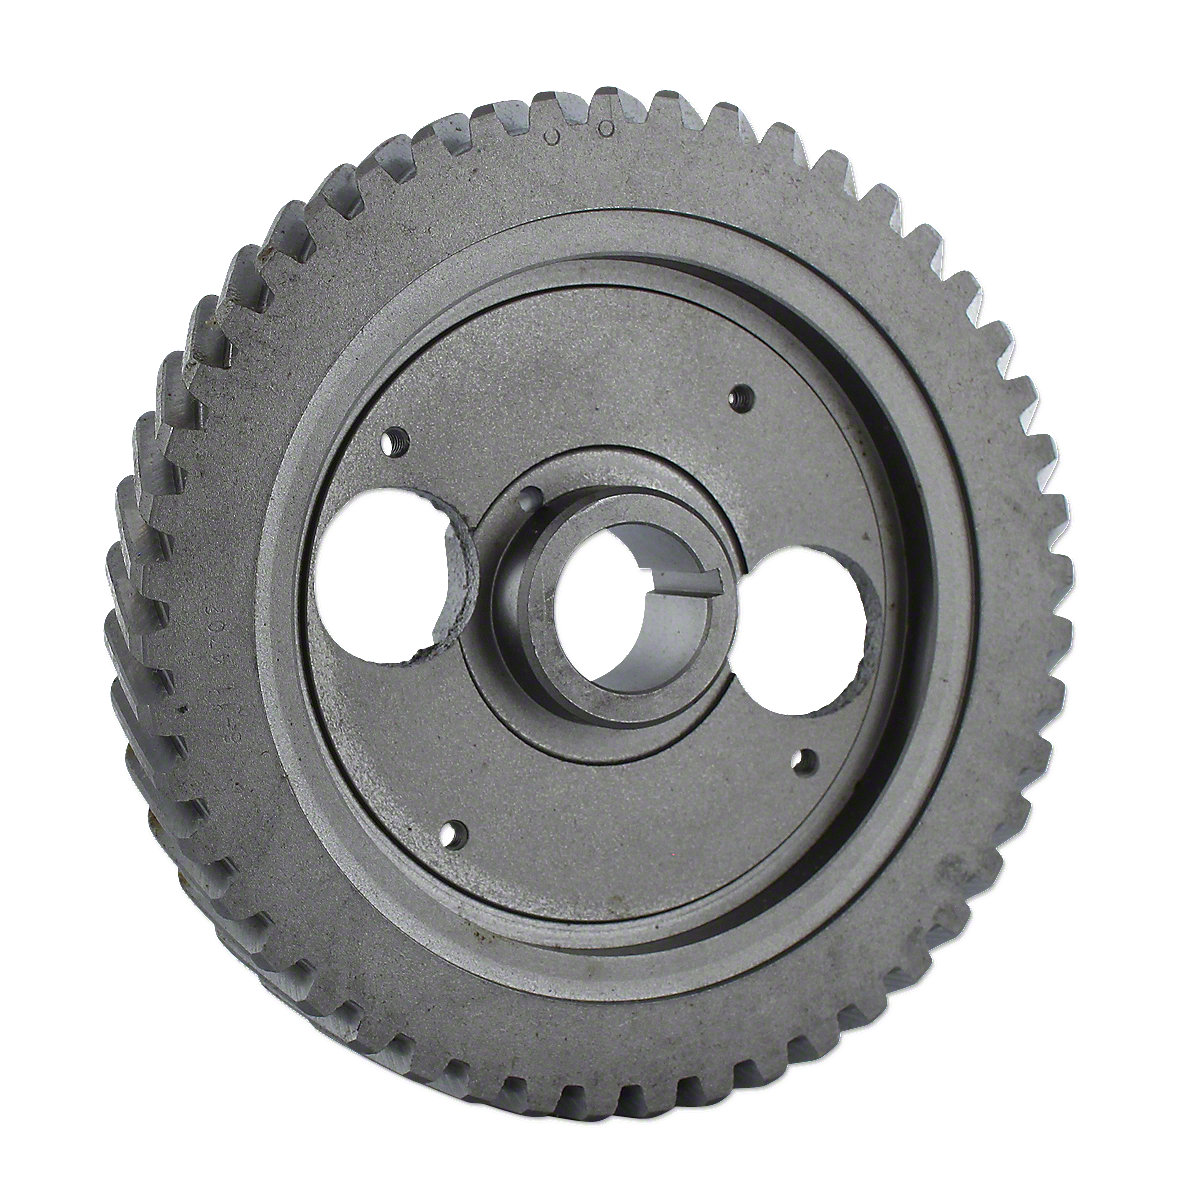 Standard Camshaft Gear For Massey Ferguson: 35, 50, 135, 150, 40, TE20, TO20, TO35, 202, 204, 2135, 20C, 30B, 4500, 230, 235, 245, Massey Harris: 50.